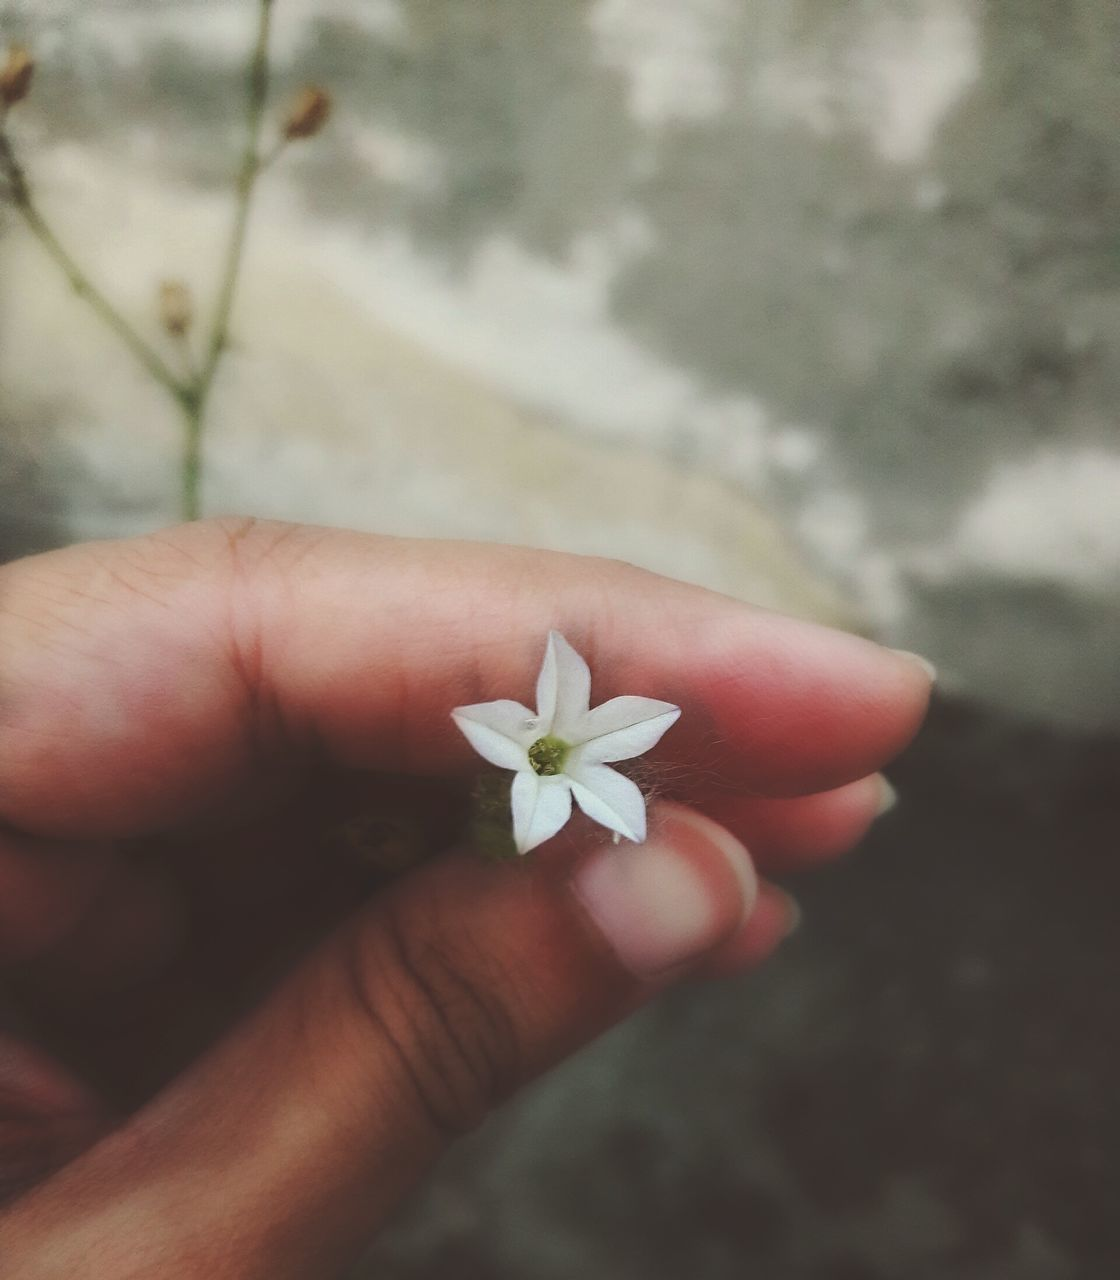 human hand, human body part, flower, one person, human finger, holding, fragility, real people, focus on foreground, day, outdoors, close-up, nature, flower head, beauty in nature, freshness, people